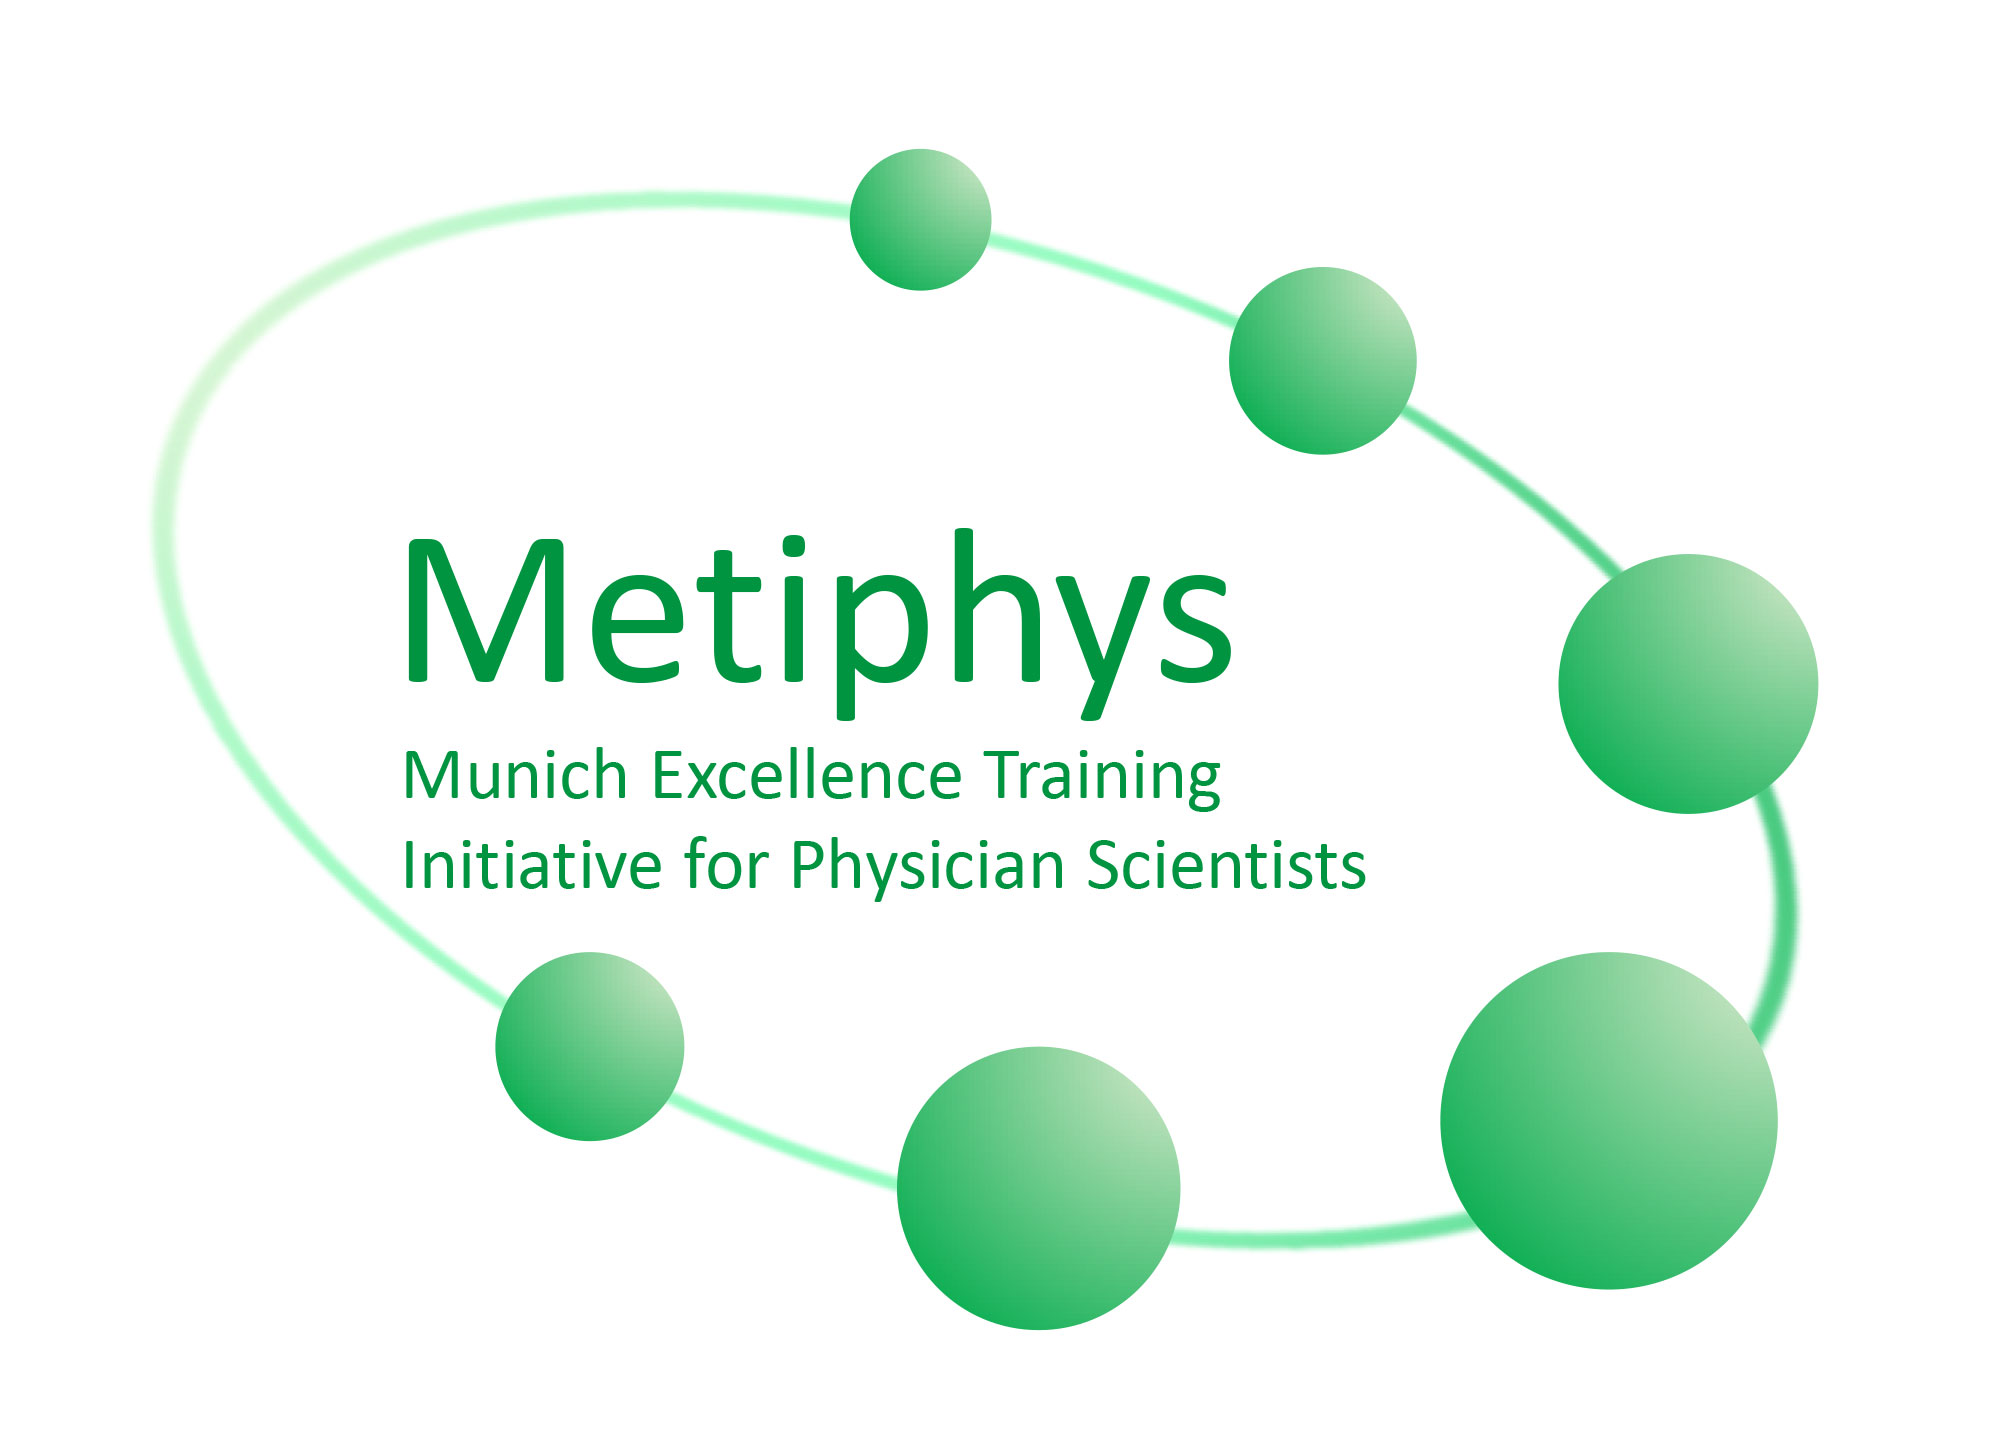 Munich Excellence Training Initiative for Physician Scientists (Metiphys)